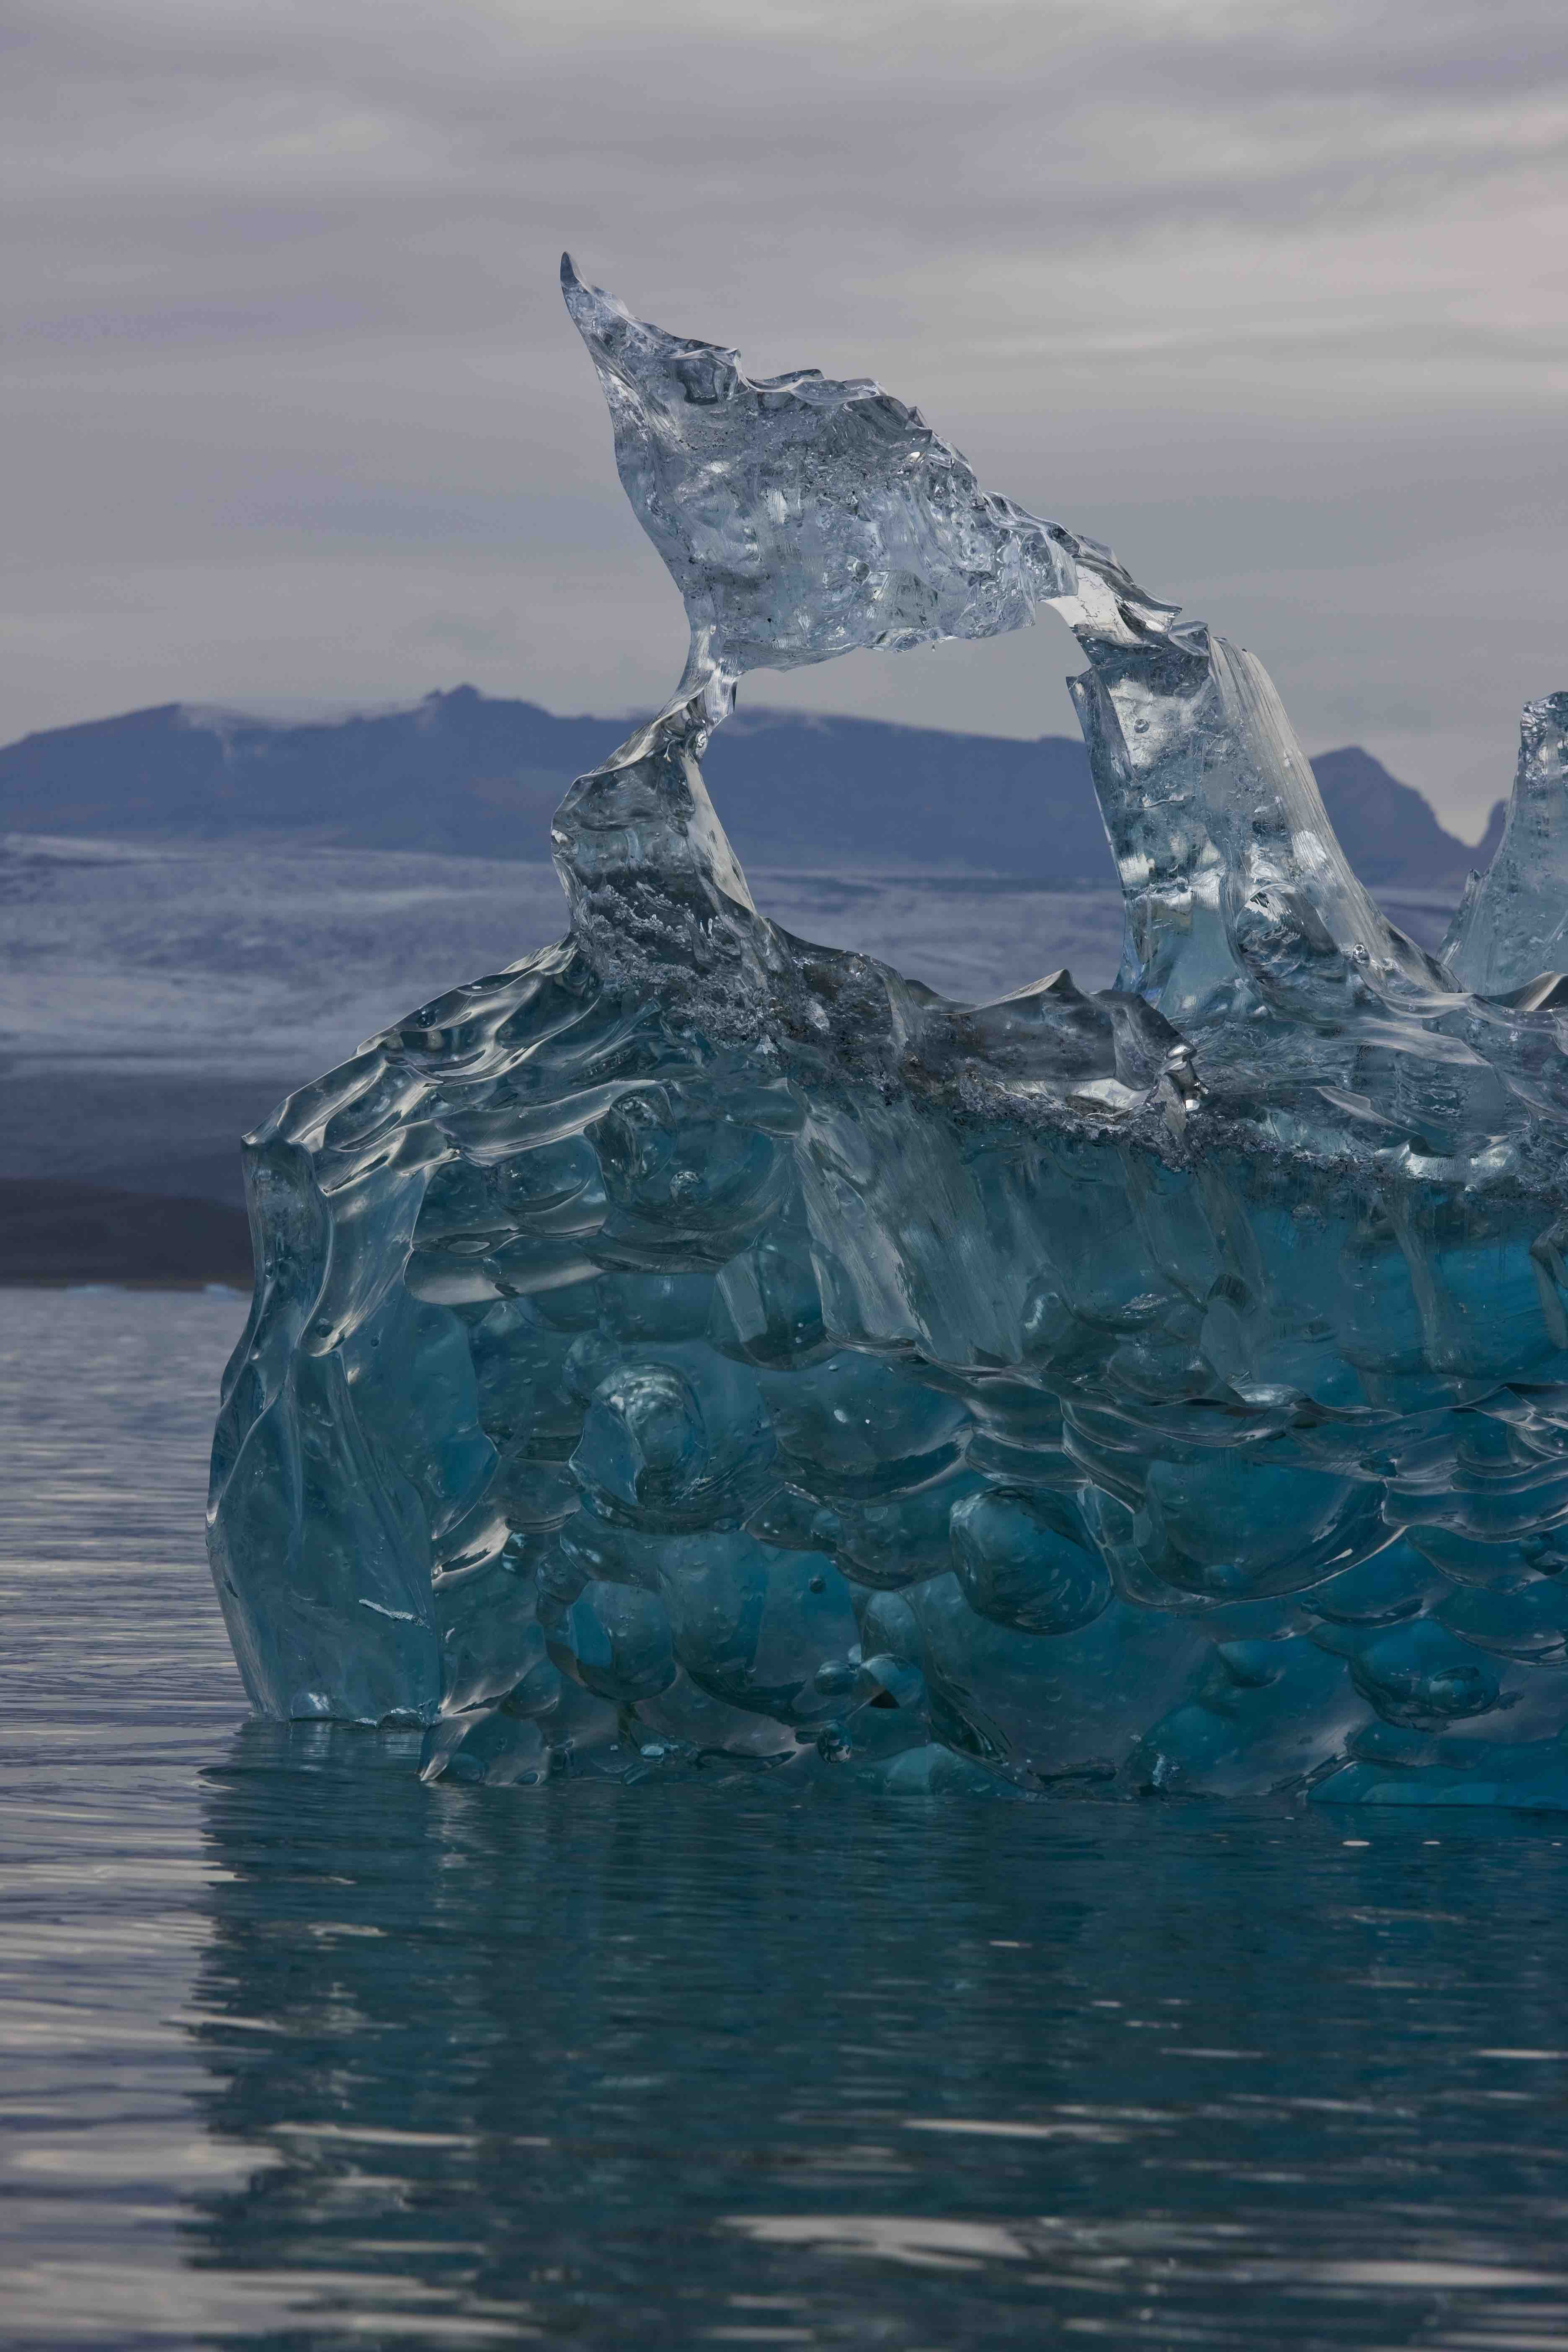 Ice sculptures in the Glacial Lagoon